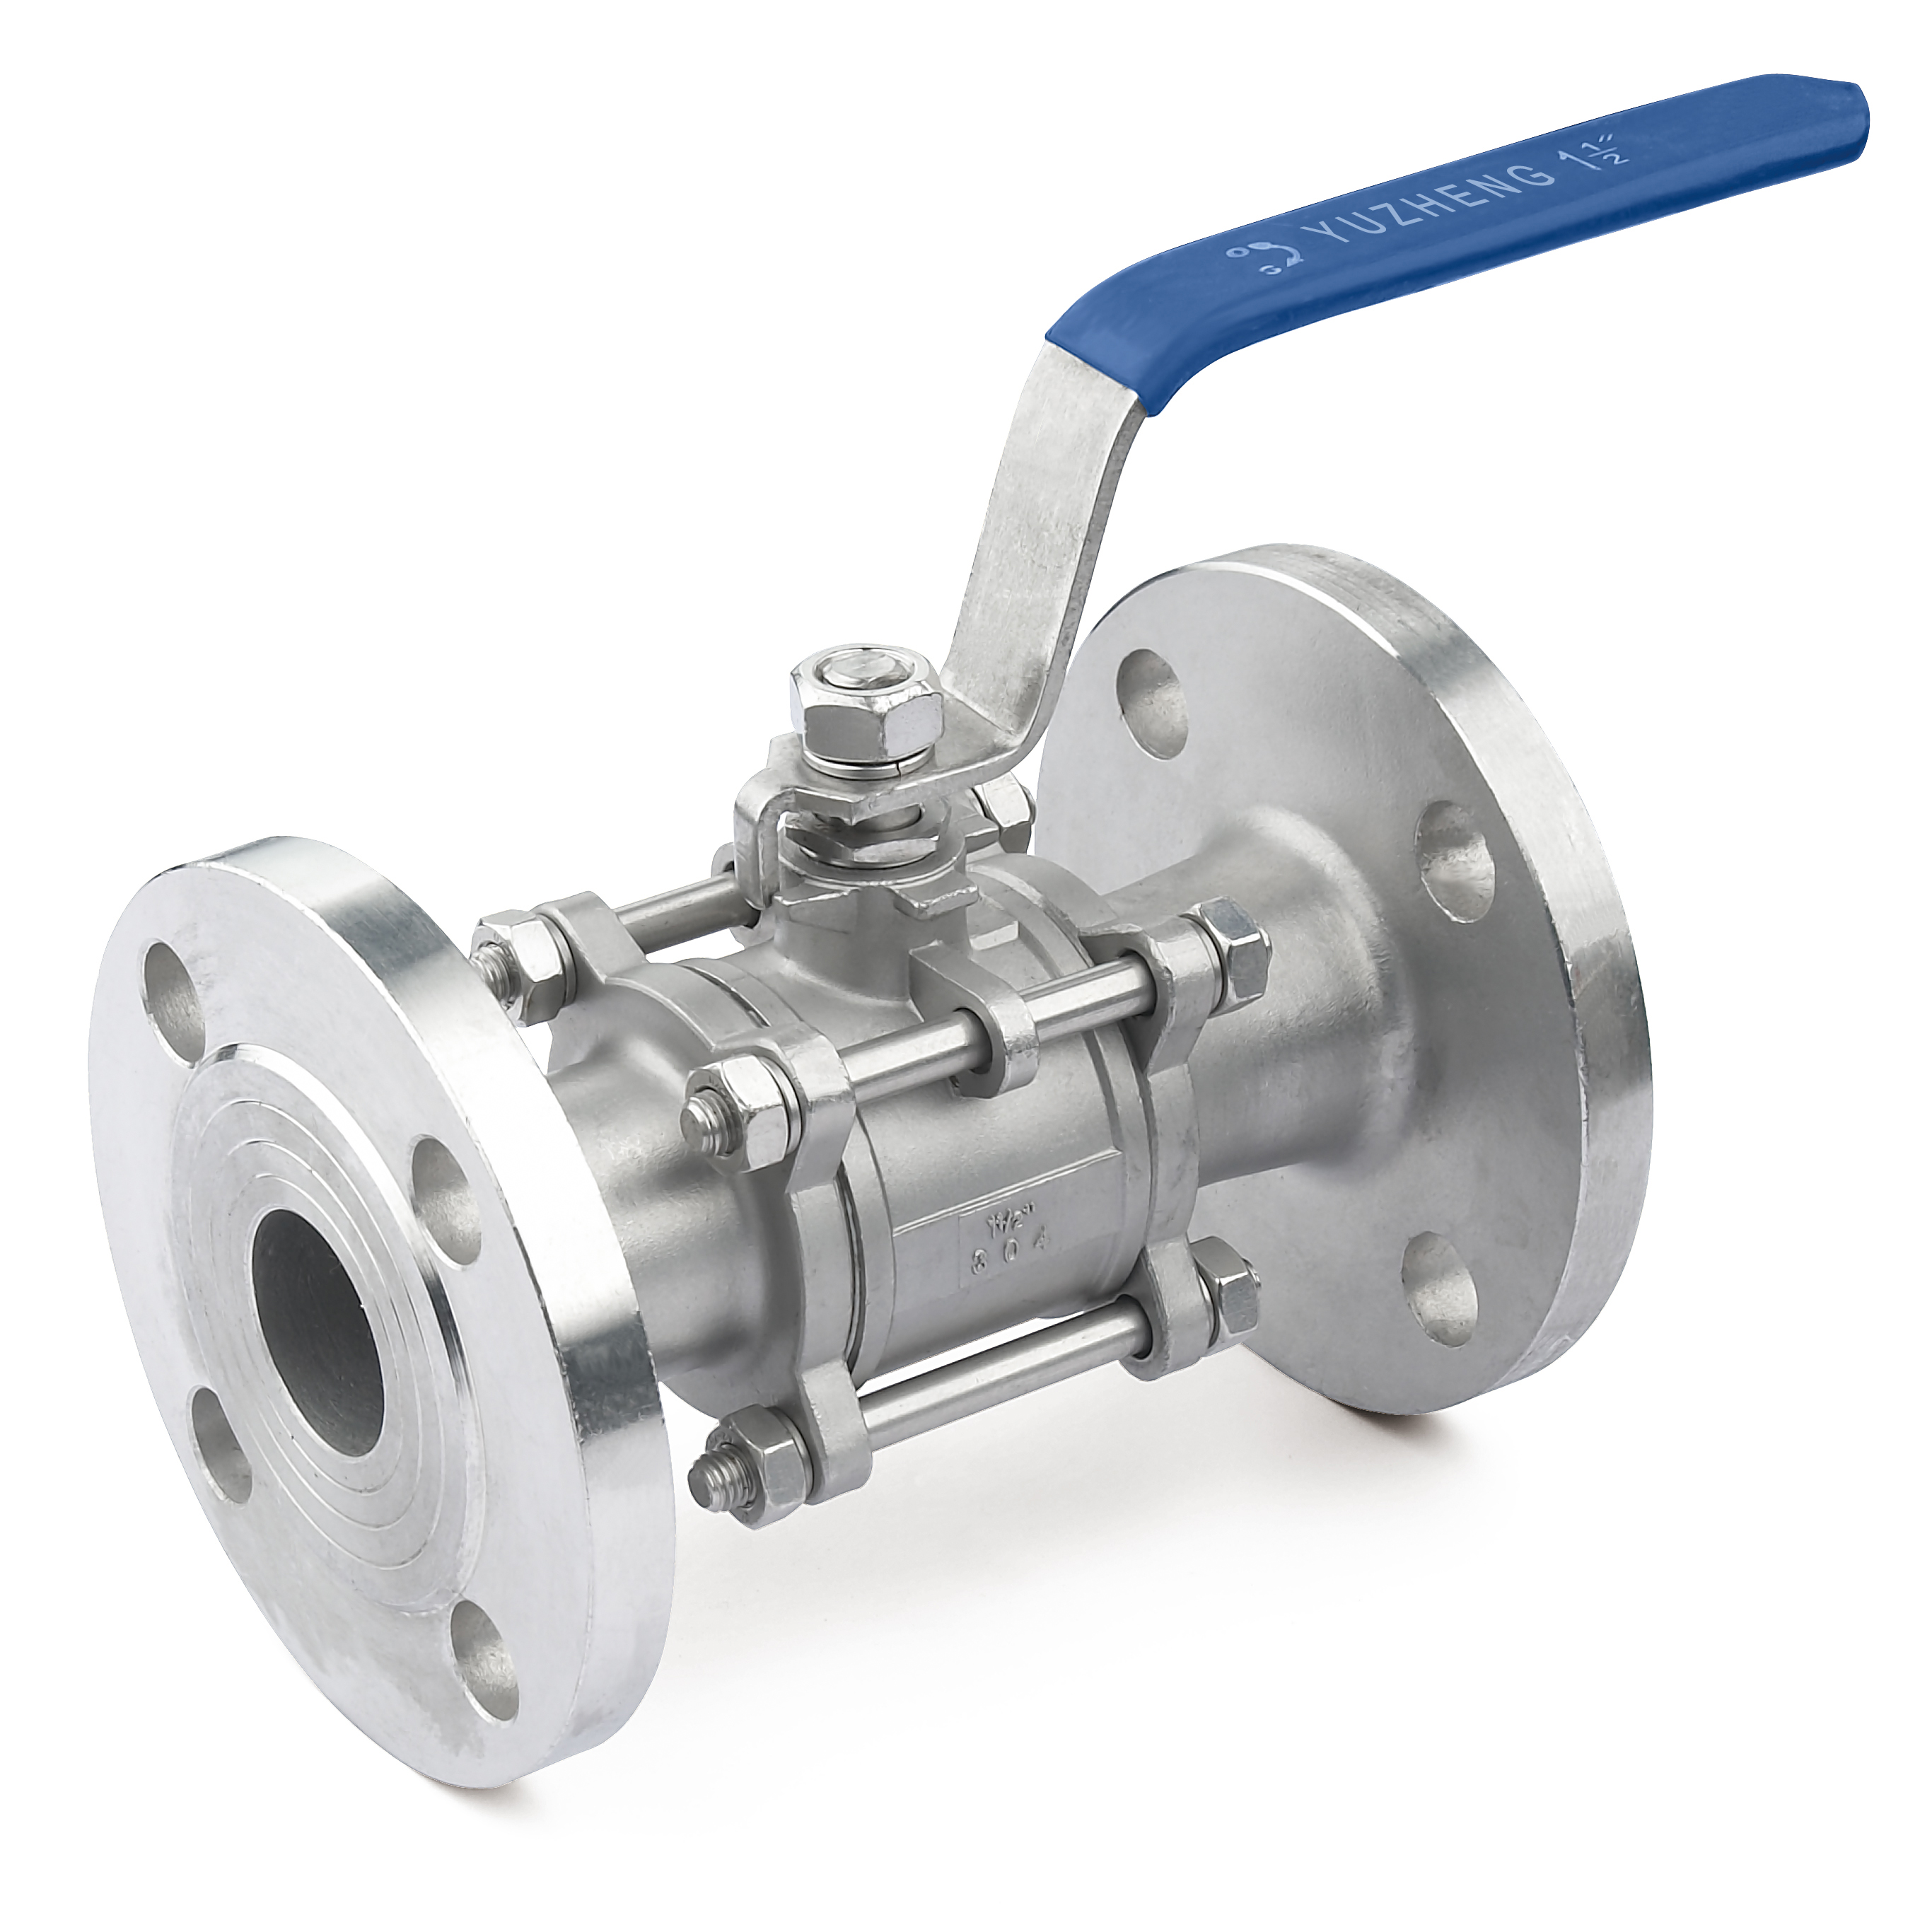 3PC Stainless Steel Flange Ball Valve